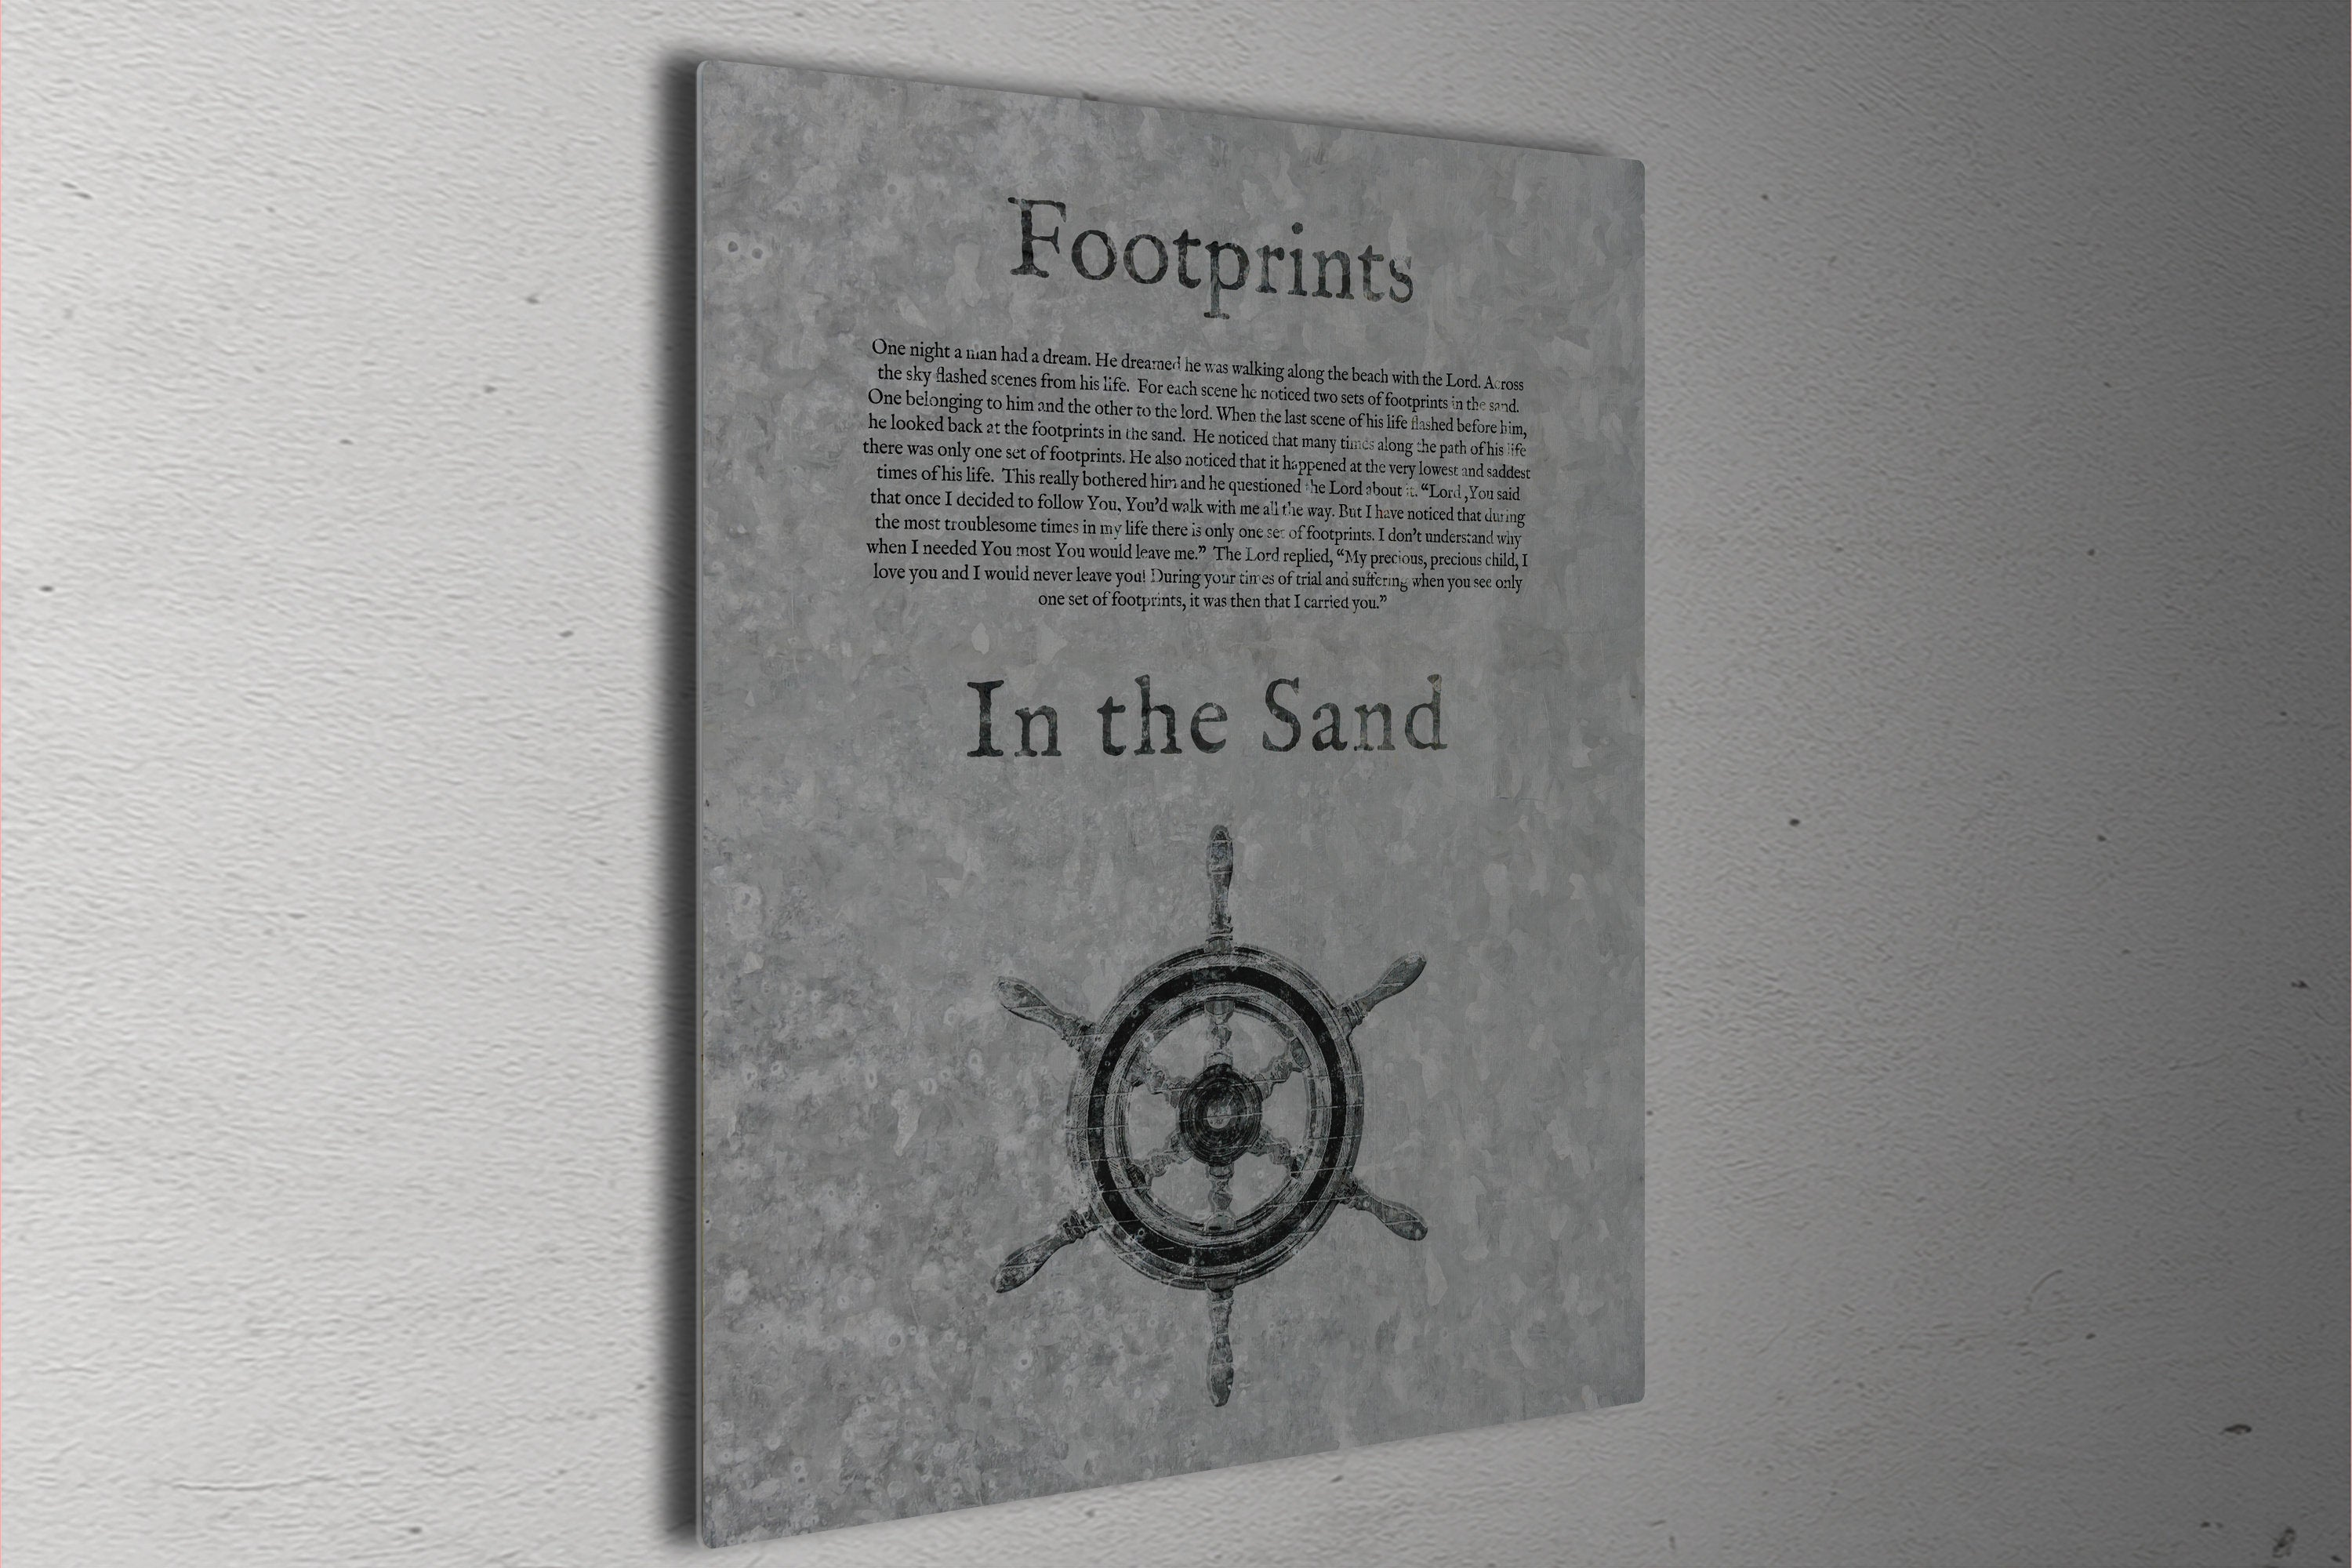 Footprints in the Sand, Galvanized Metal Sign, Footprints Poem, for Him, Christian Decor, Religious Art for Beach house, Gift, Christian Men